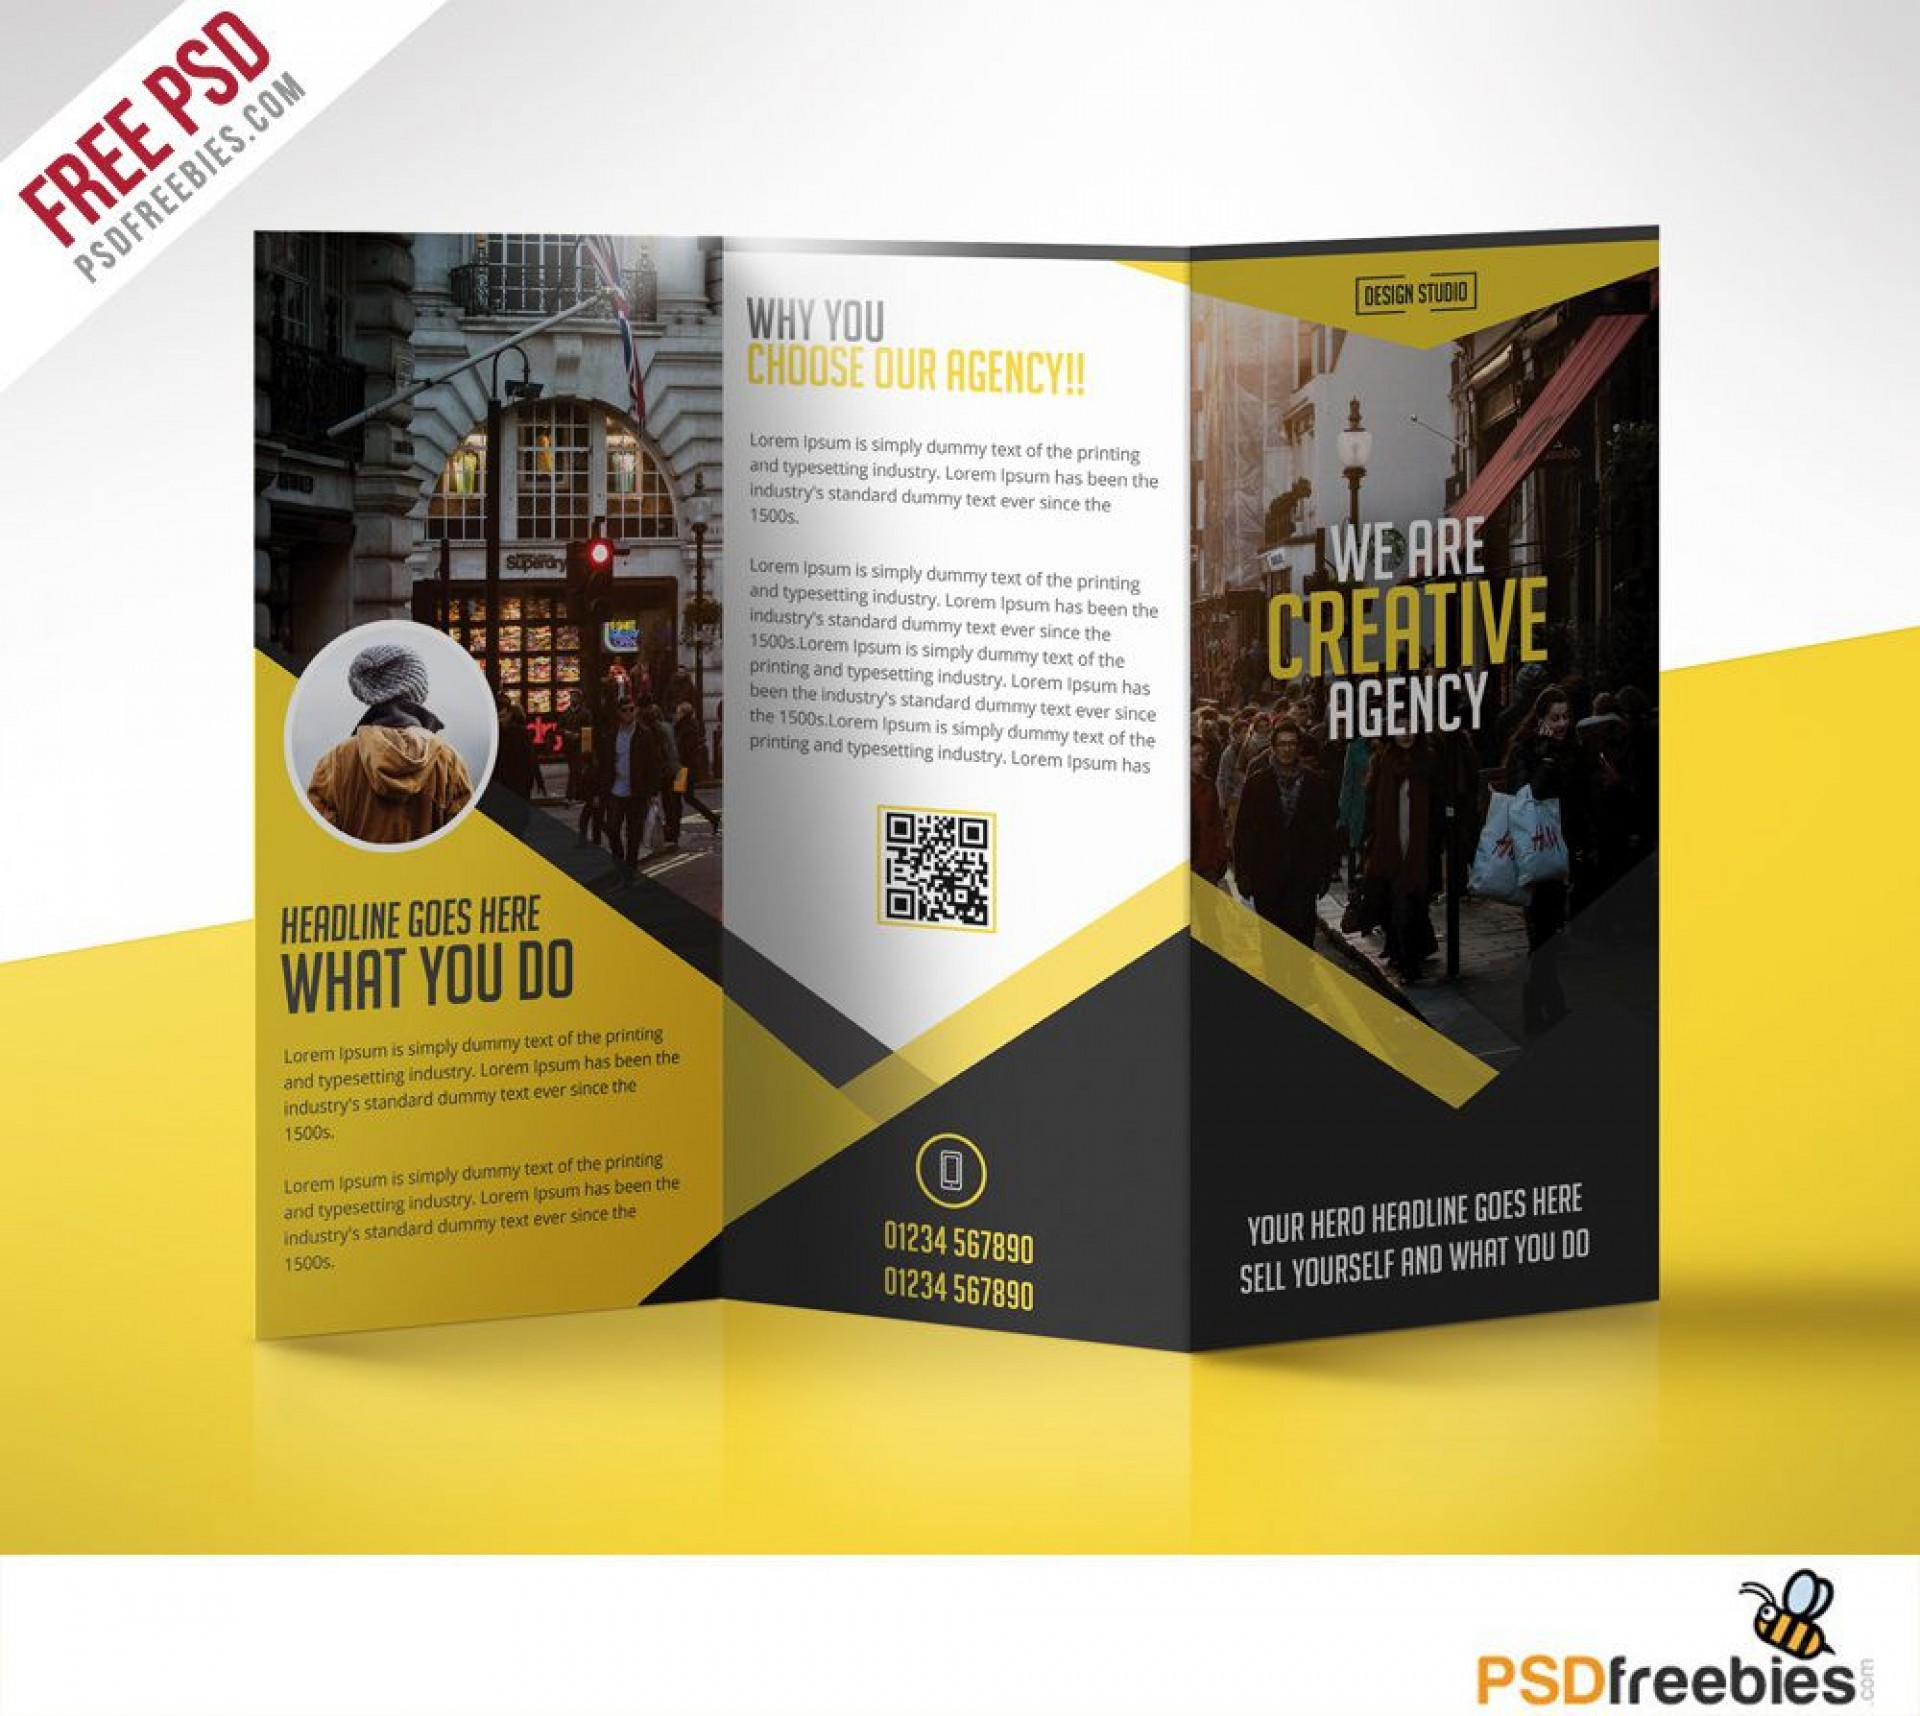 008 Breathtaking Photoshop Brochure Design Template Free Download Photo 1920